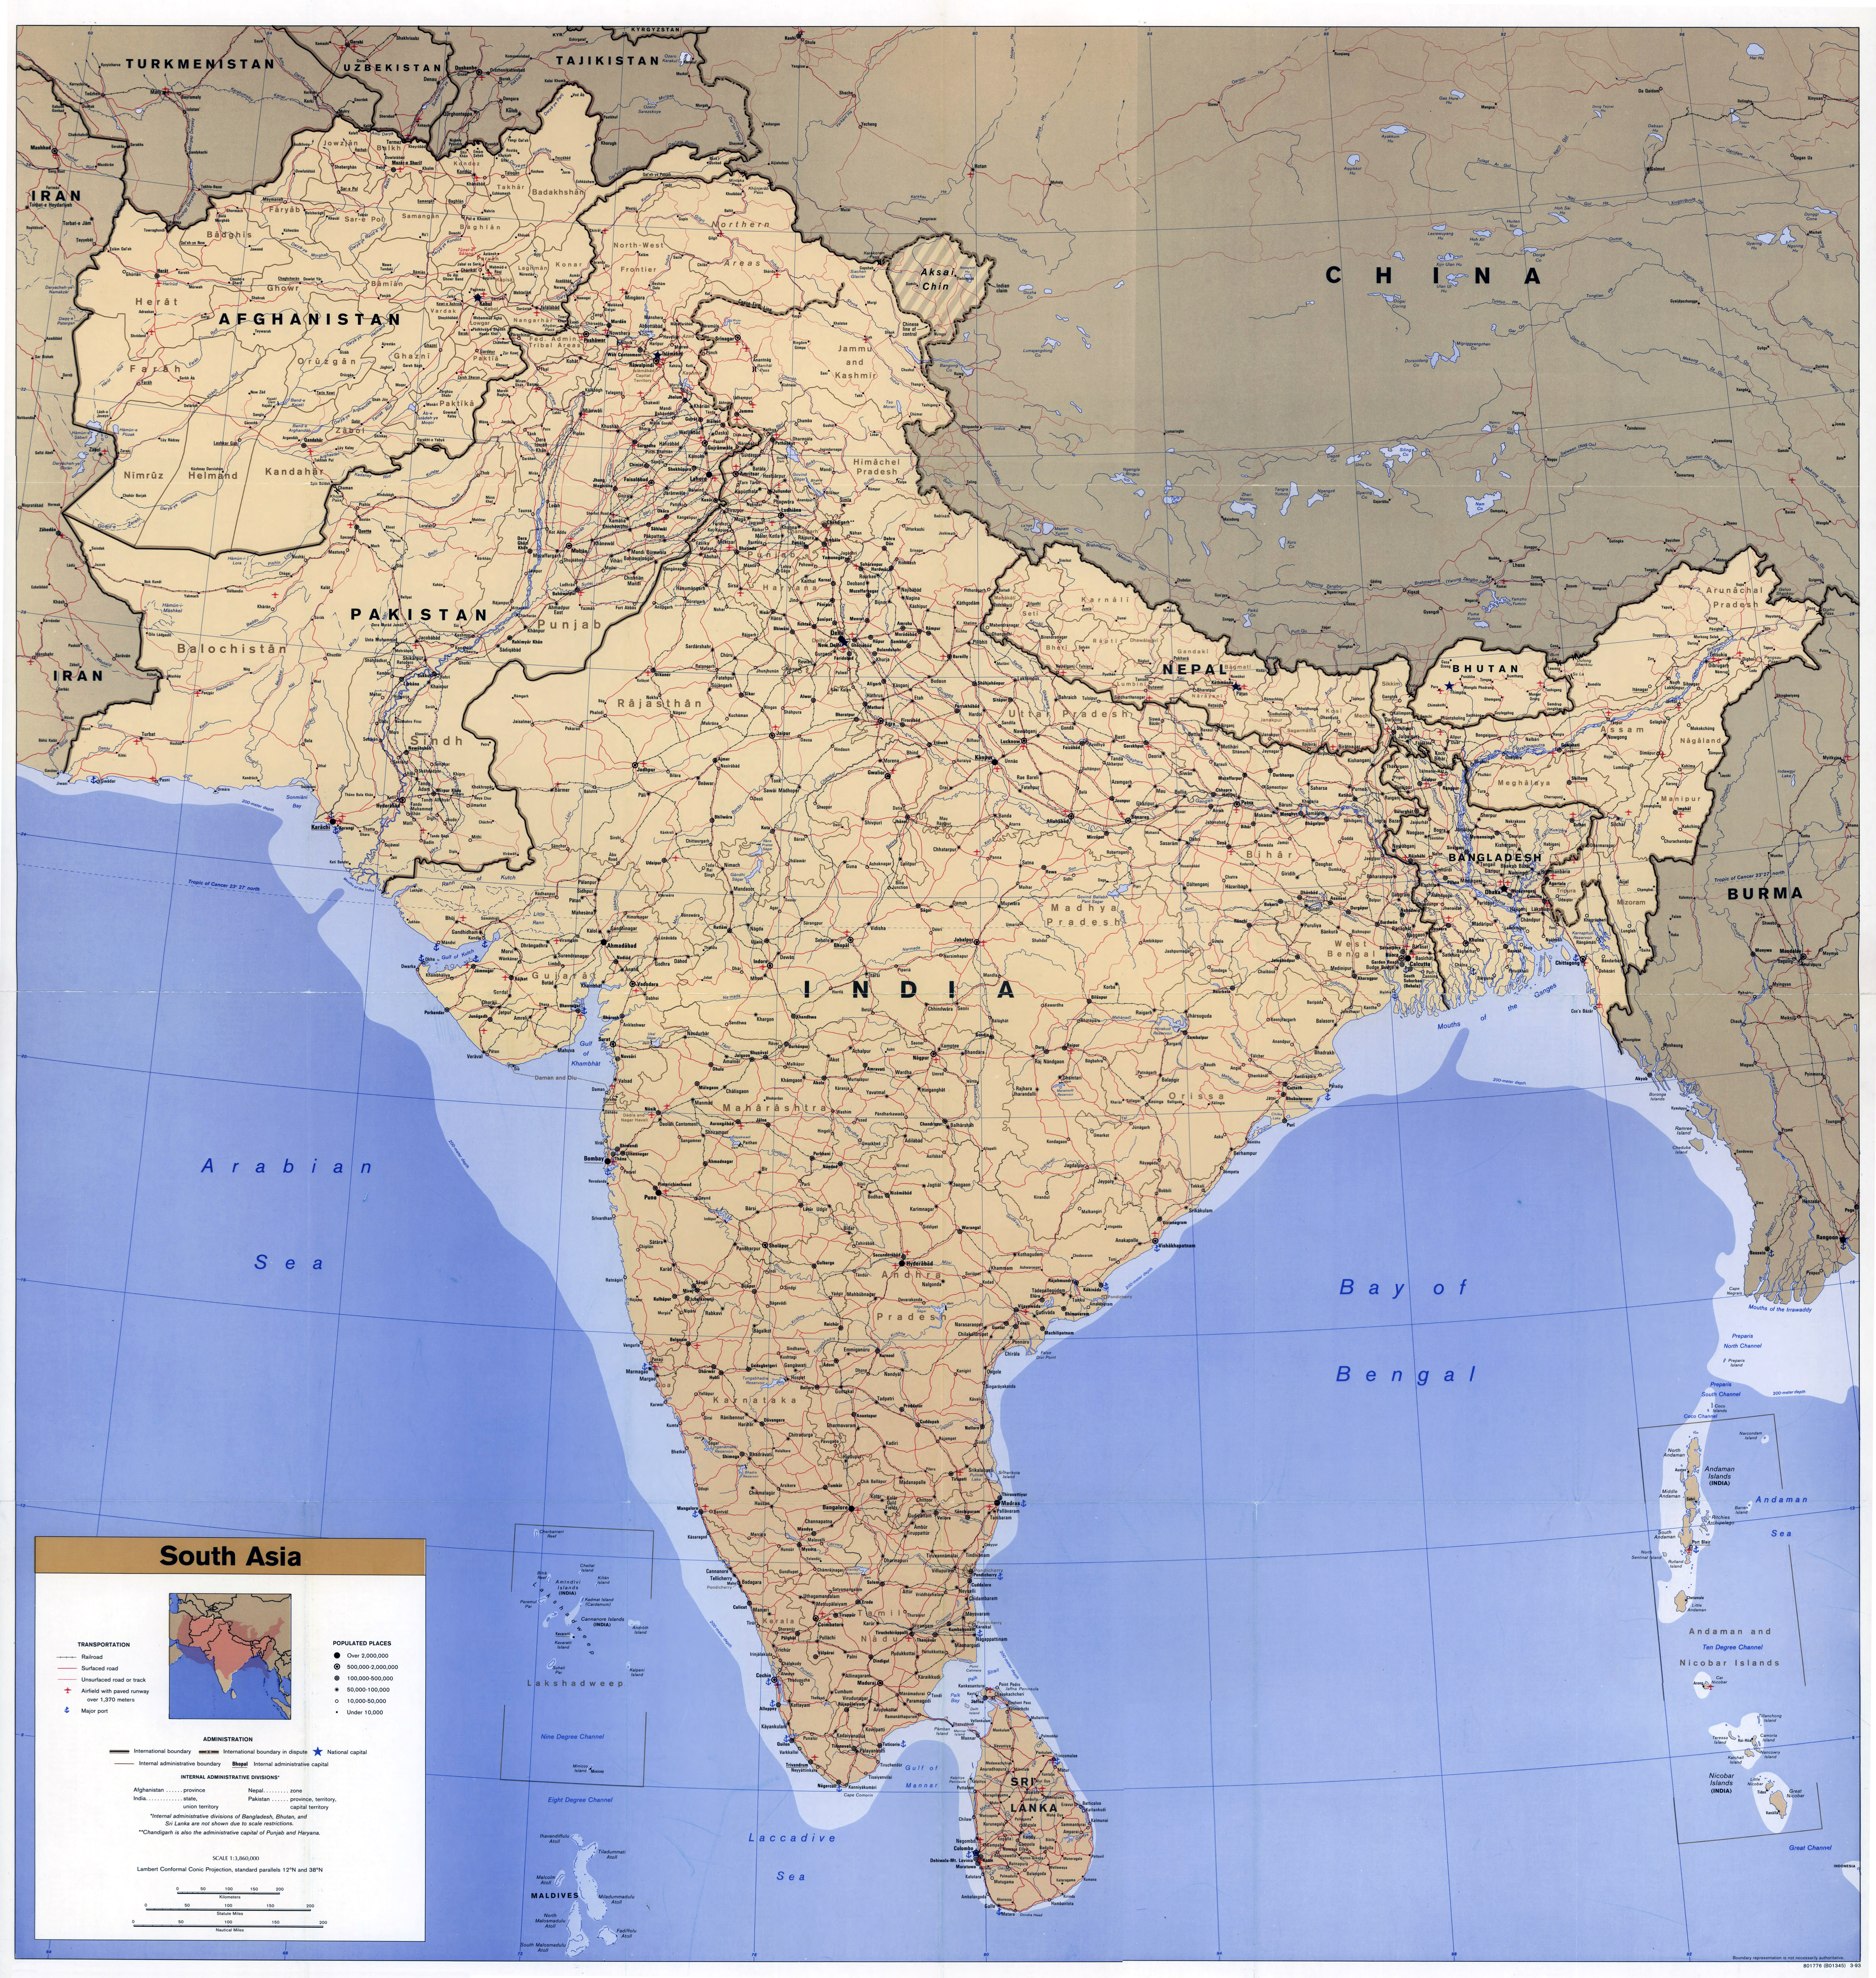 Large Scale Detailed Political Map Of South Asia With Roads, Railroads,  Cities, Airports